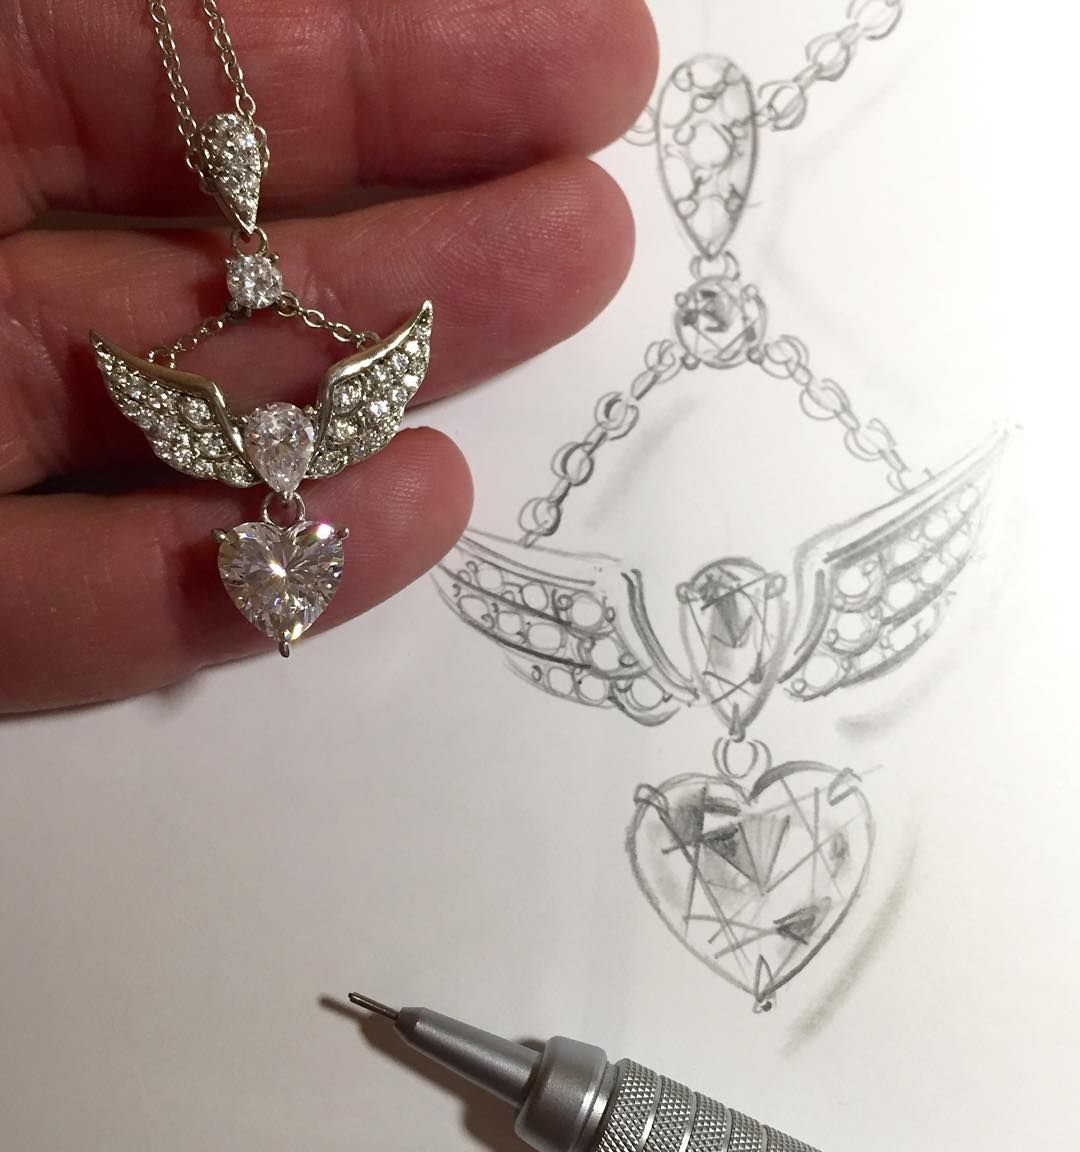 Jtv Necklaces: #wingedheart #pendant Only On Jewelry Television And Www